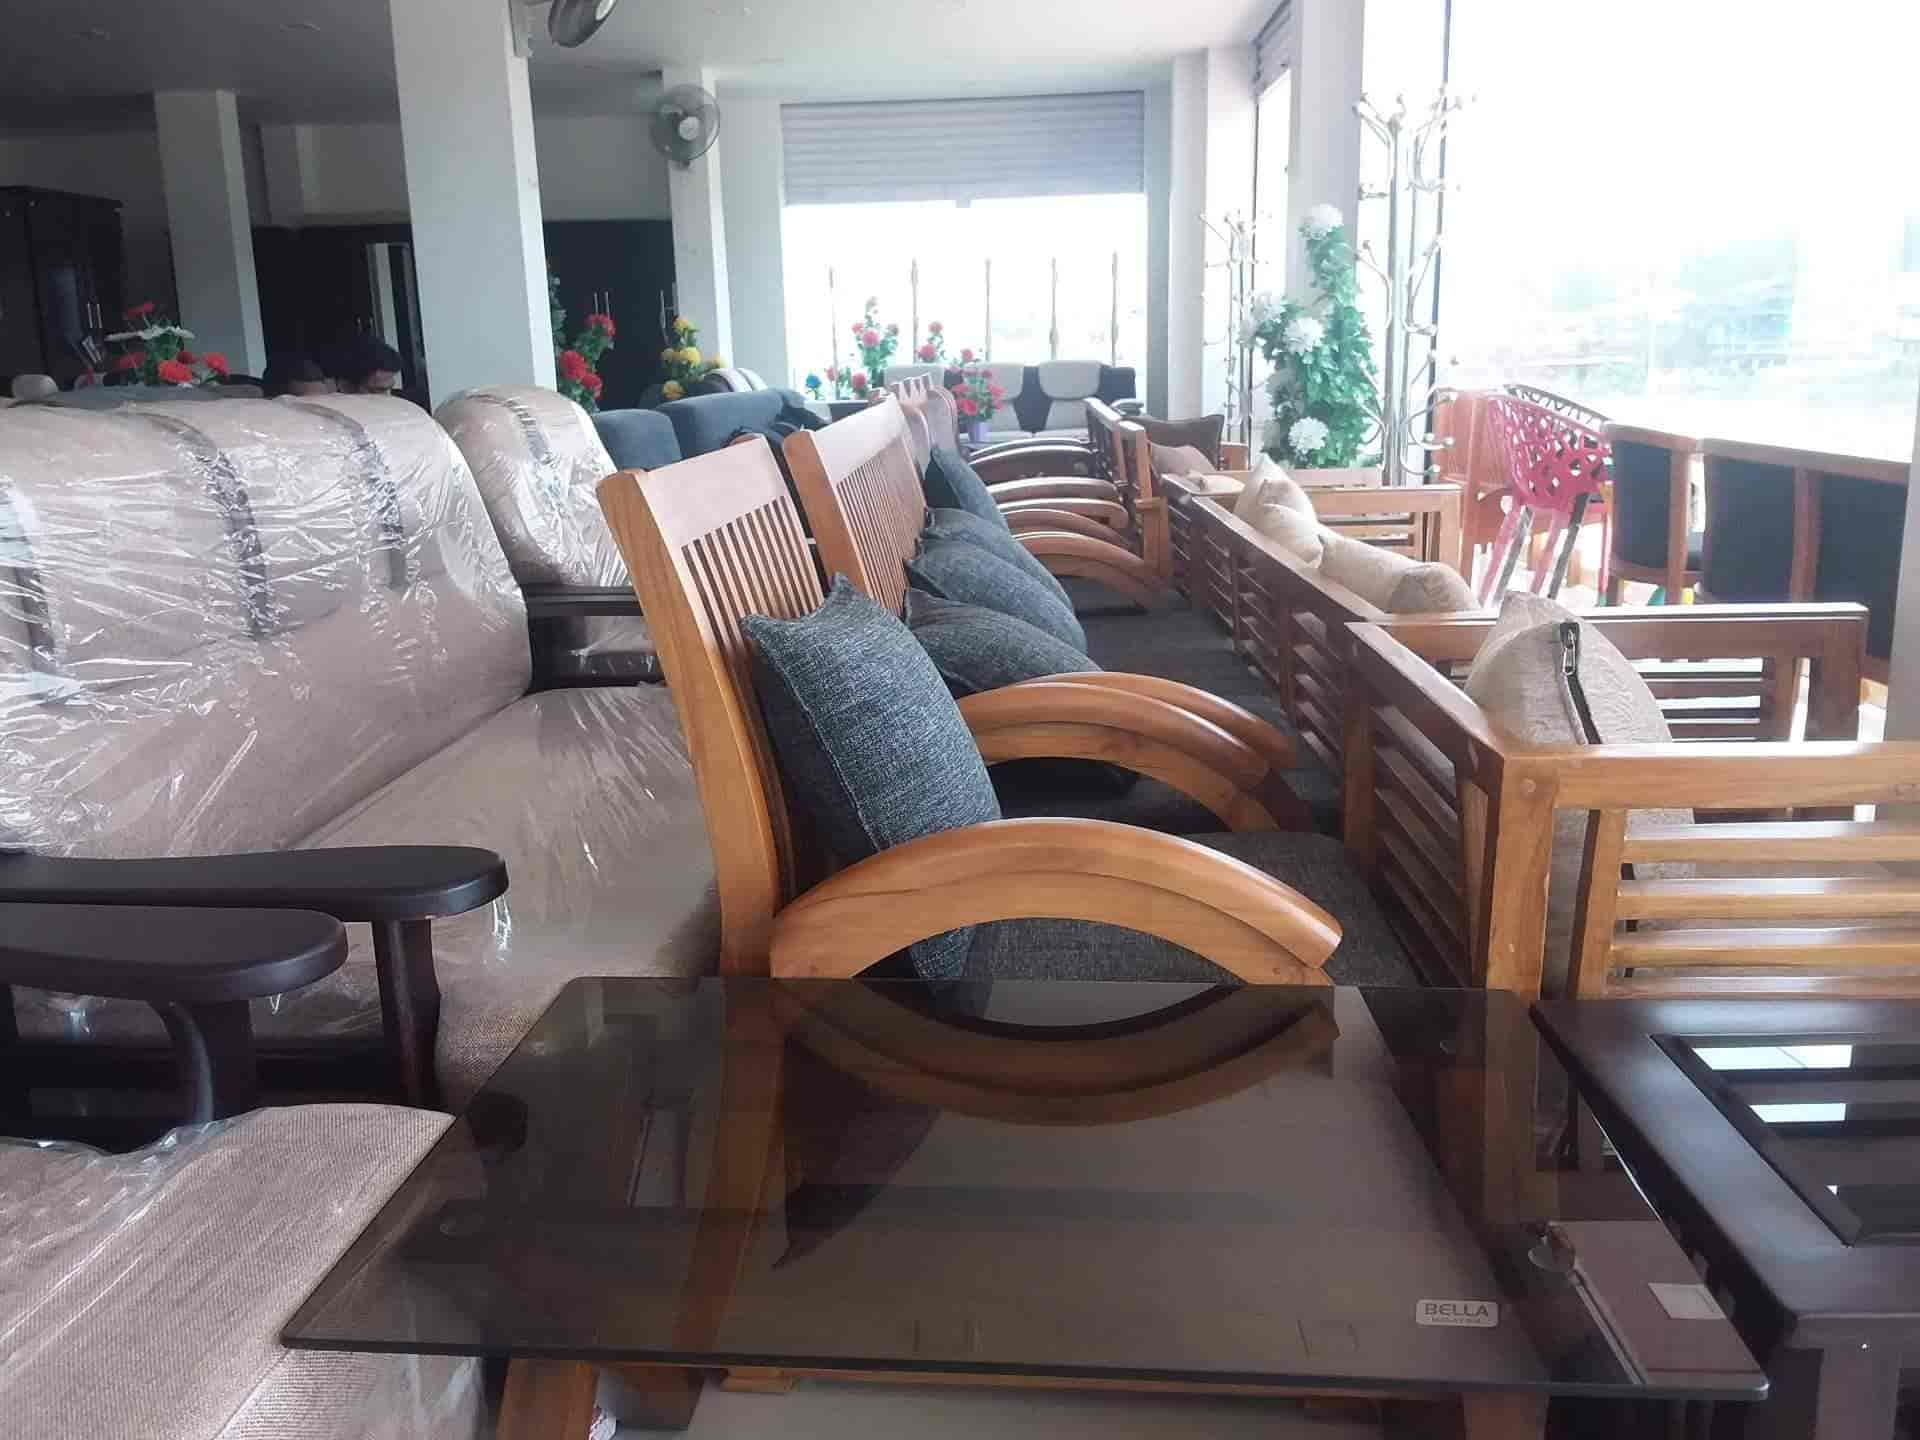 Tech furniture Living Room Inside View Hitech Furniture Photos Murnad Madikeri Coorg Furniture Dealers Justdial Hitech Furniture Photos Murnad Madikeri Coorg Pictures Images